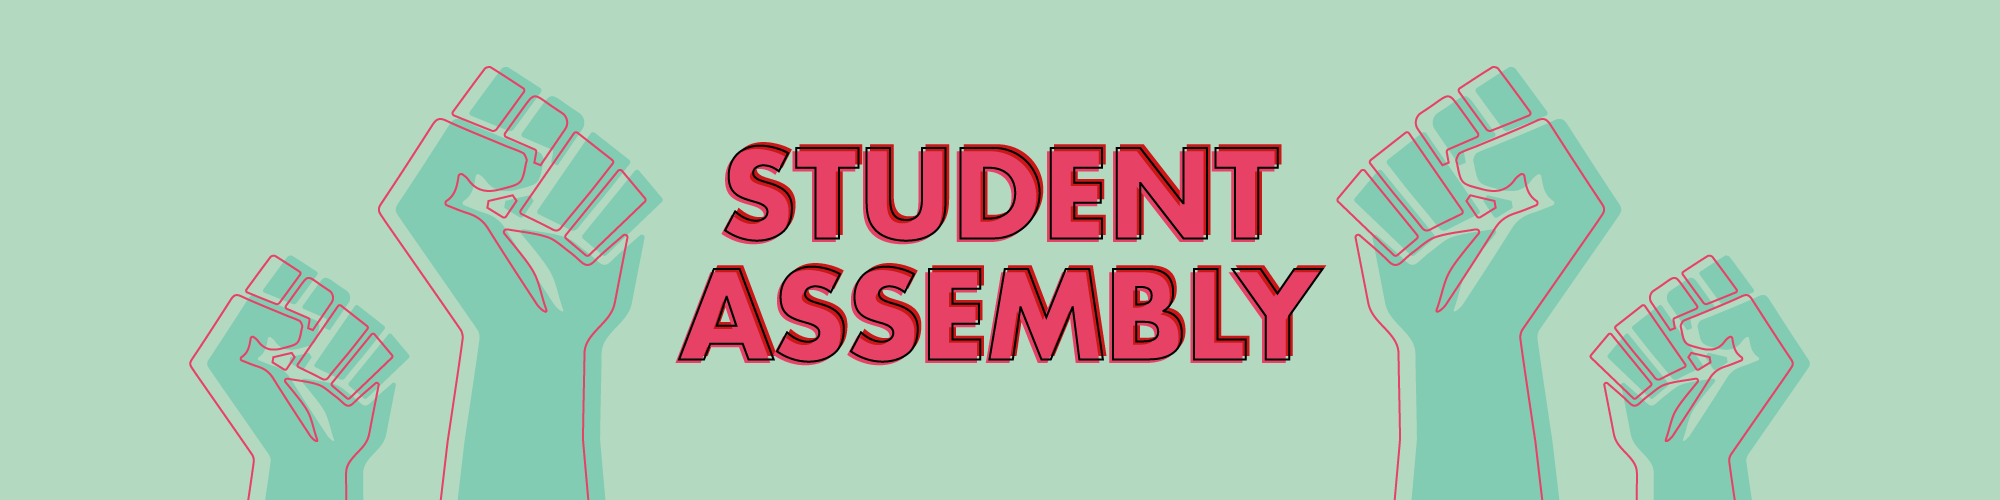 Student Assembly & AGM